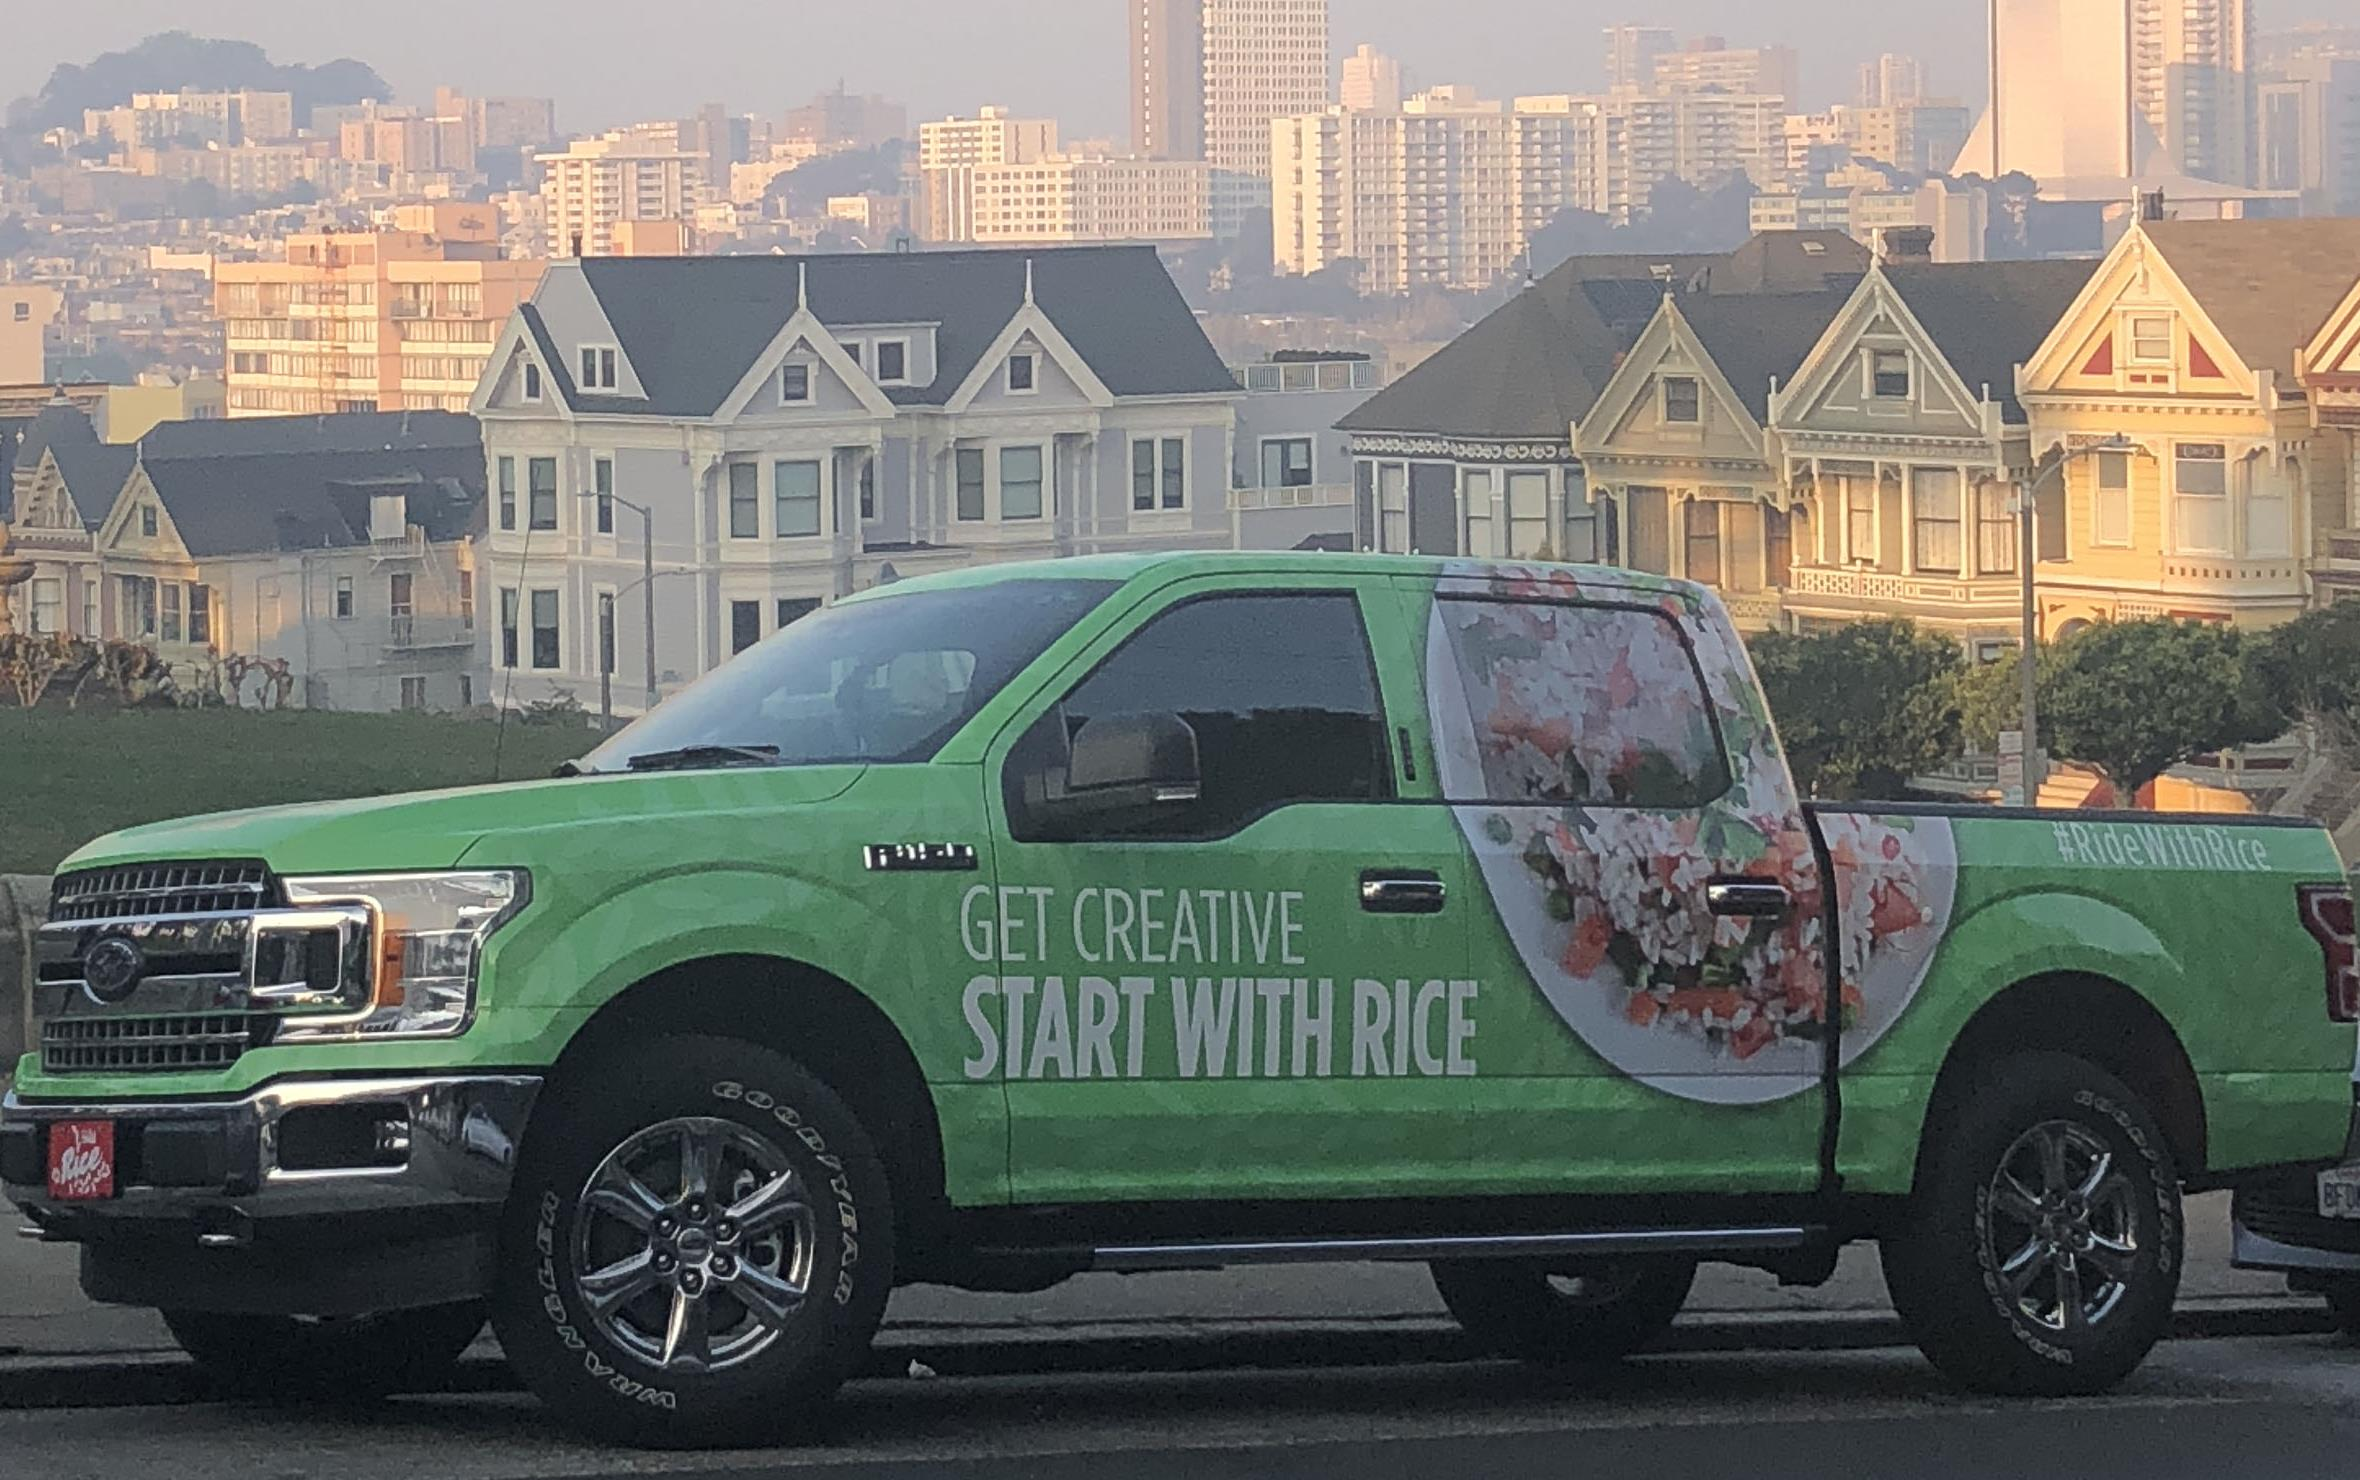 """Green Rice Truck covered with images of rice and text """"Get Creative, Start with Rice,"""" parked on street in front of Painted Ladies, colorful row houses in San Francisco"""